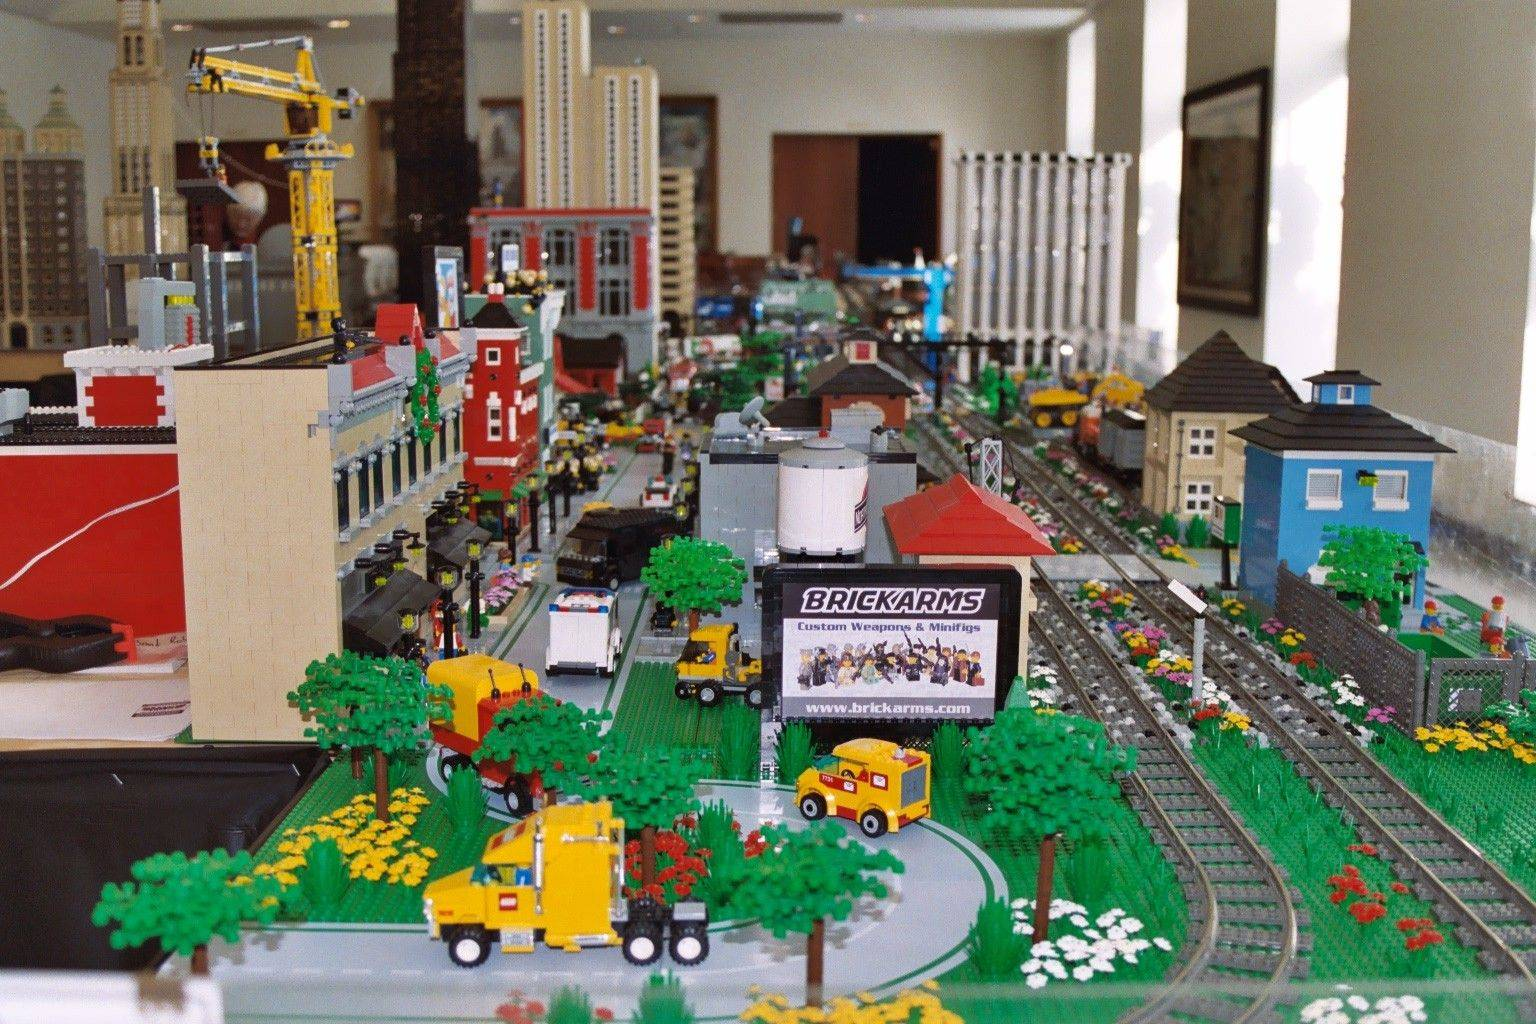 The Northern Illinois Lego Train Club's locomotives roll past everything from buildings and vehicles to trees and flowers  all made from Legos.